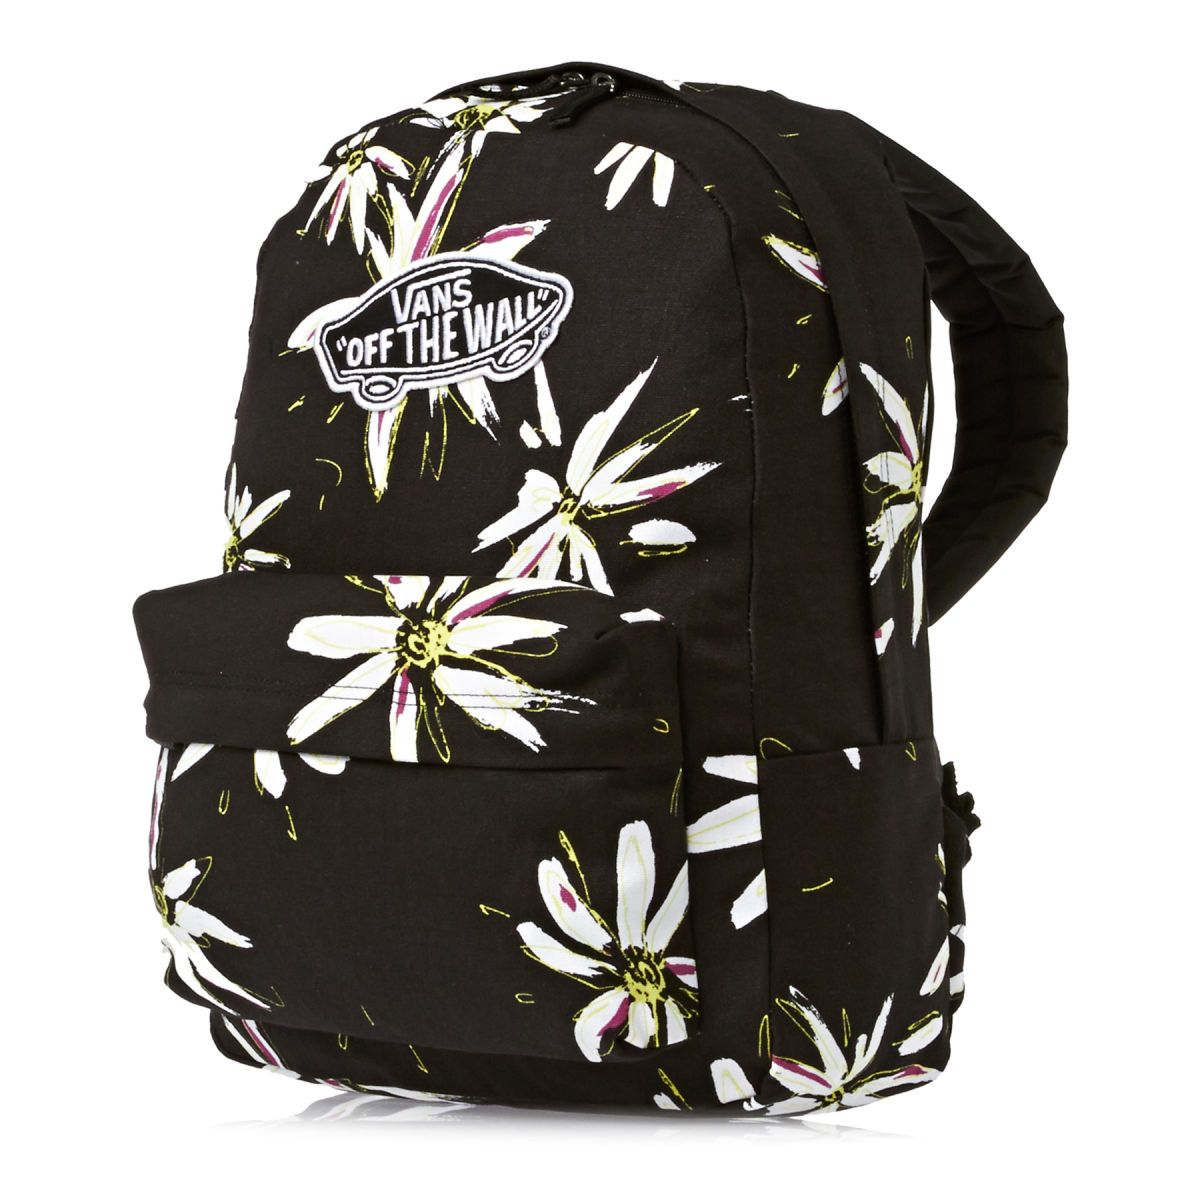 Vans Realm Backpack - Black/white | Free UK Delivery on All Orders ...